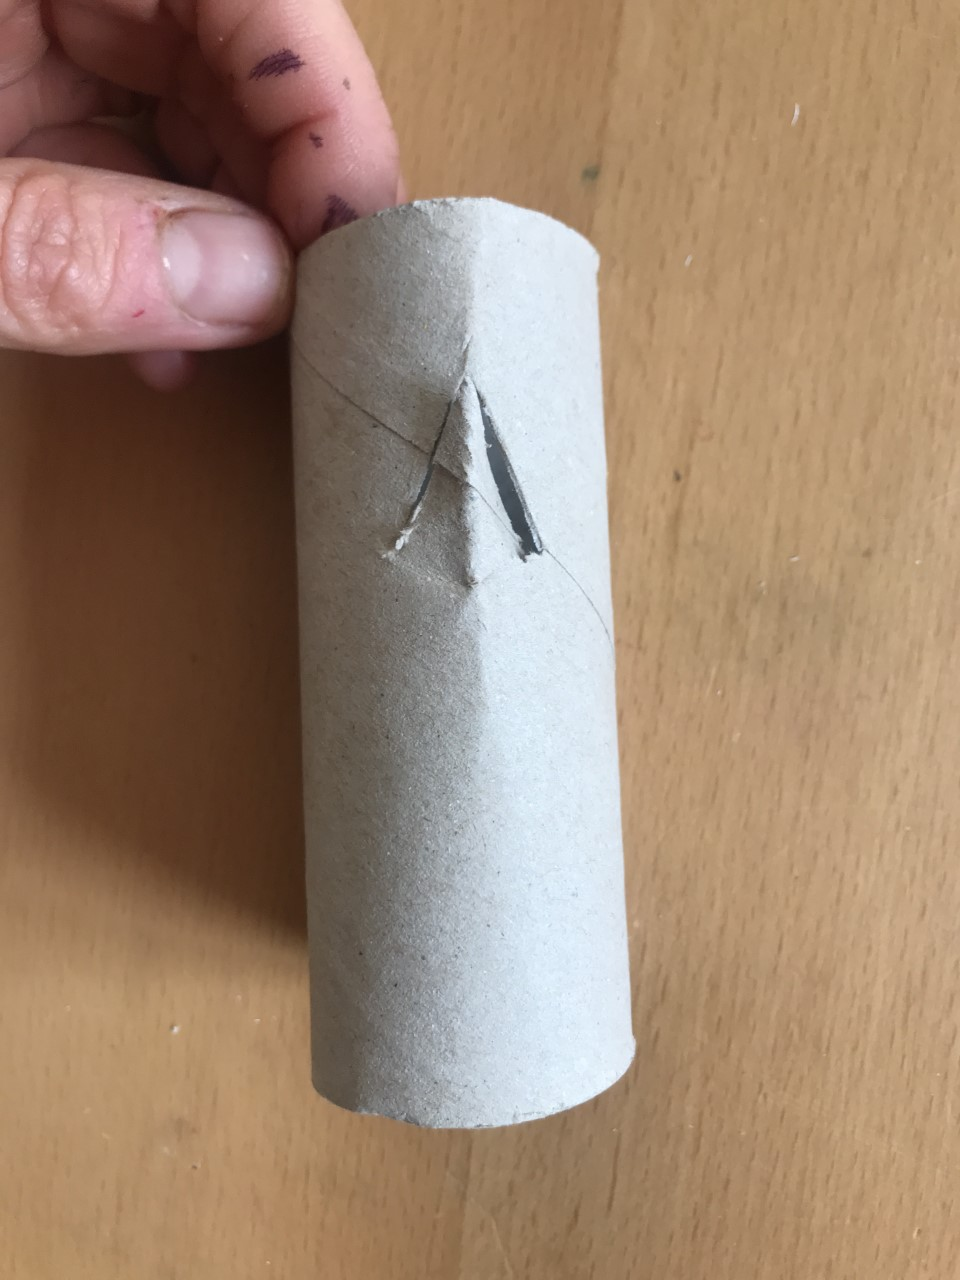 Someone holds a loo roll tube with a triangular cut in it. The point of the triangular cut is near the top of the tube.